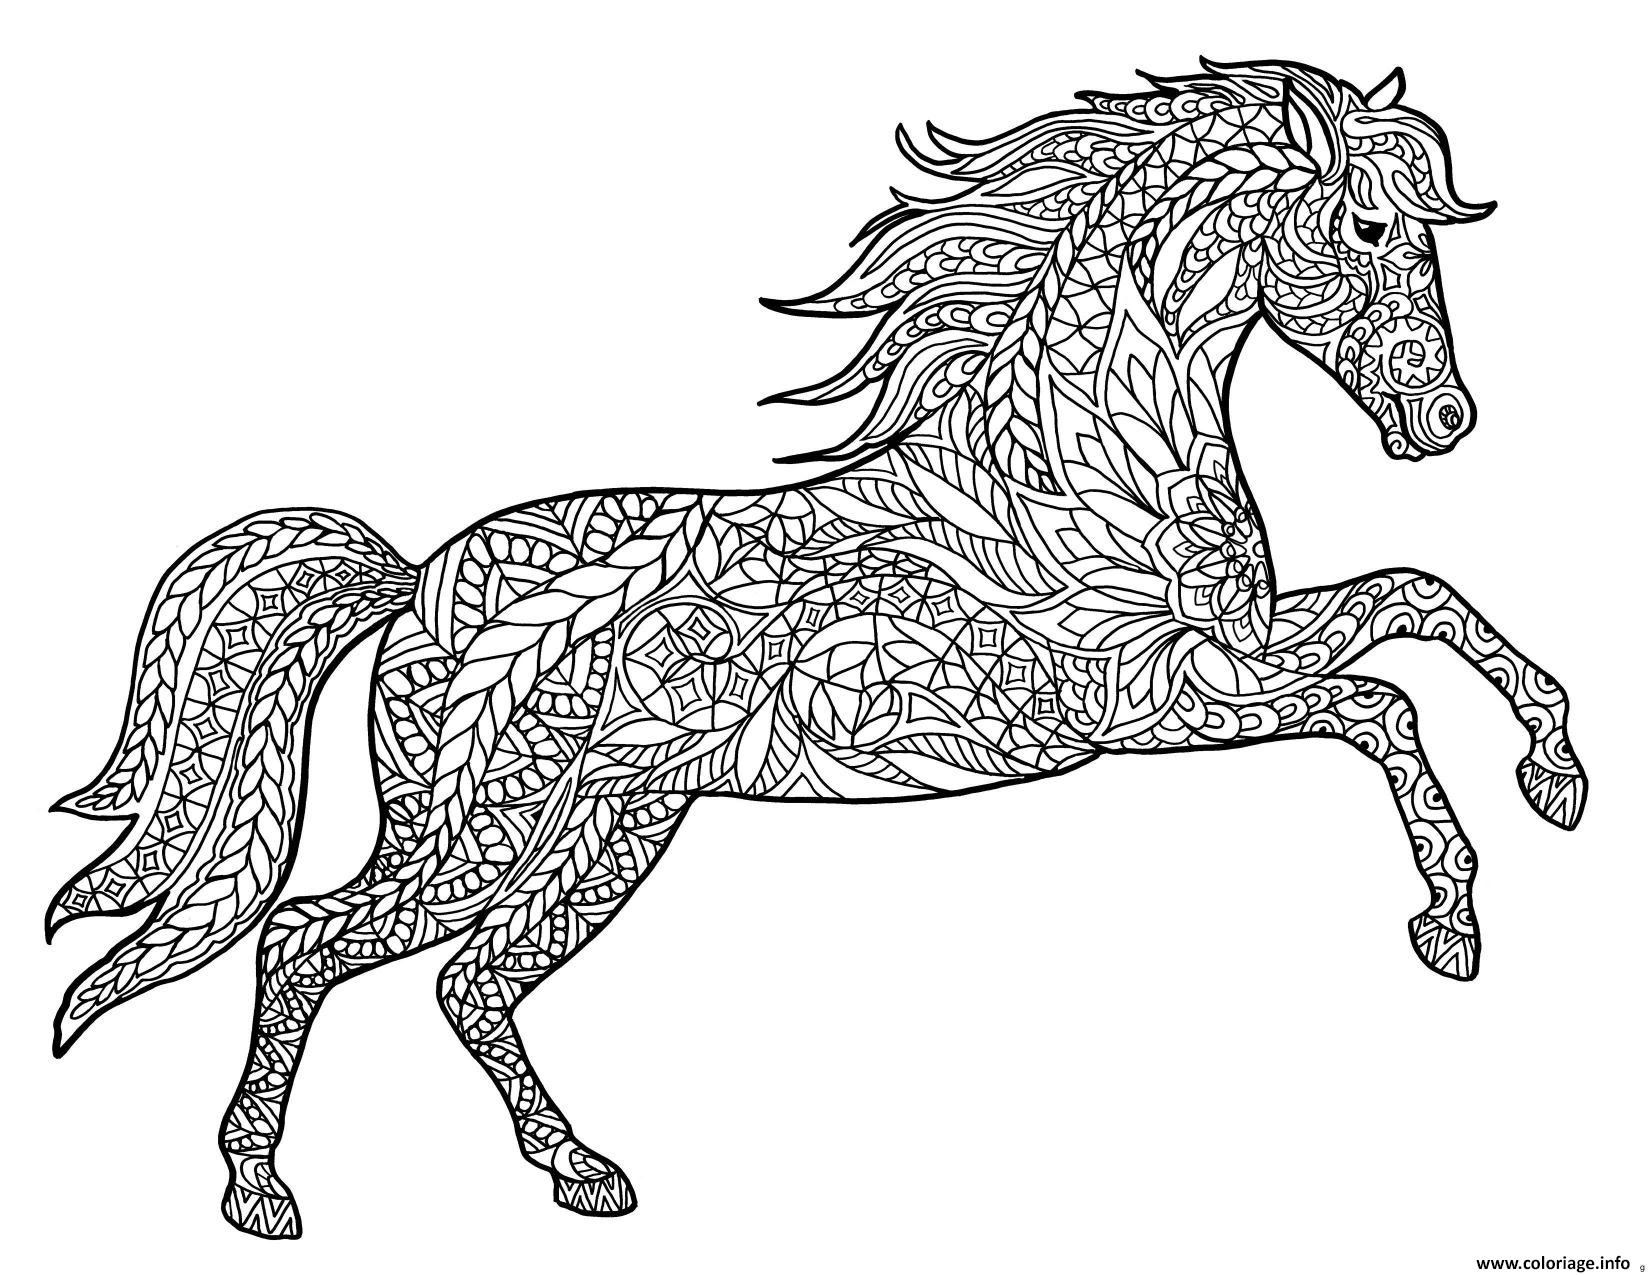 Epingle Par Pinterest87 Sur Color Coloriage Cheval Coloriage Et